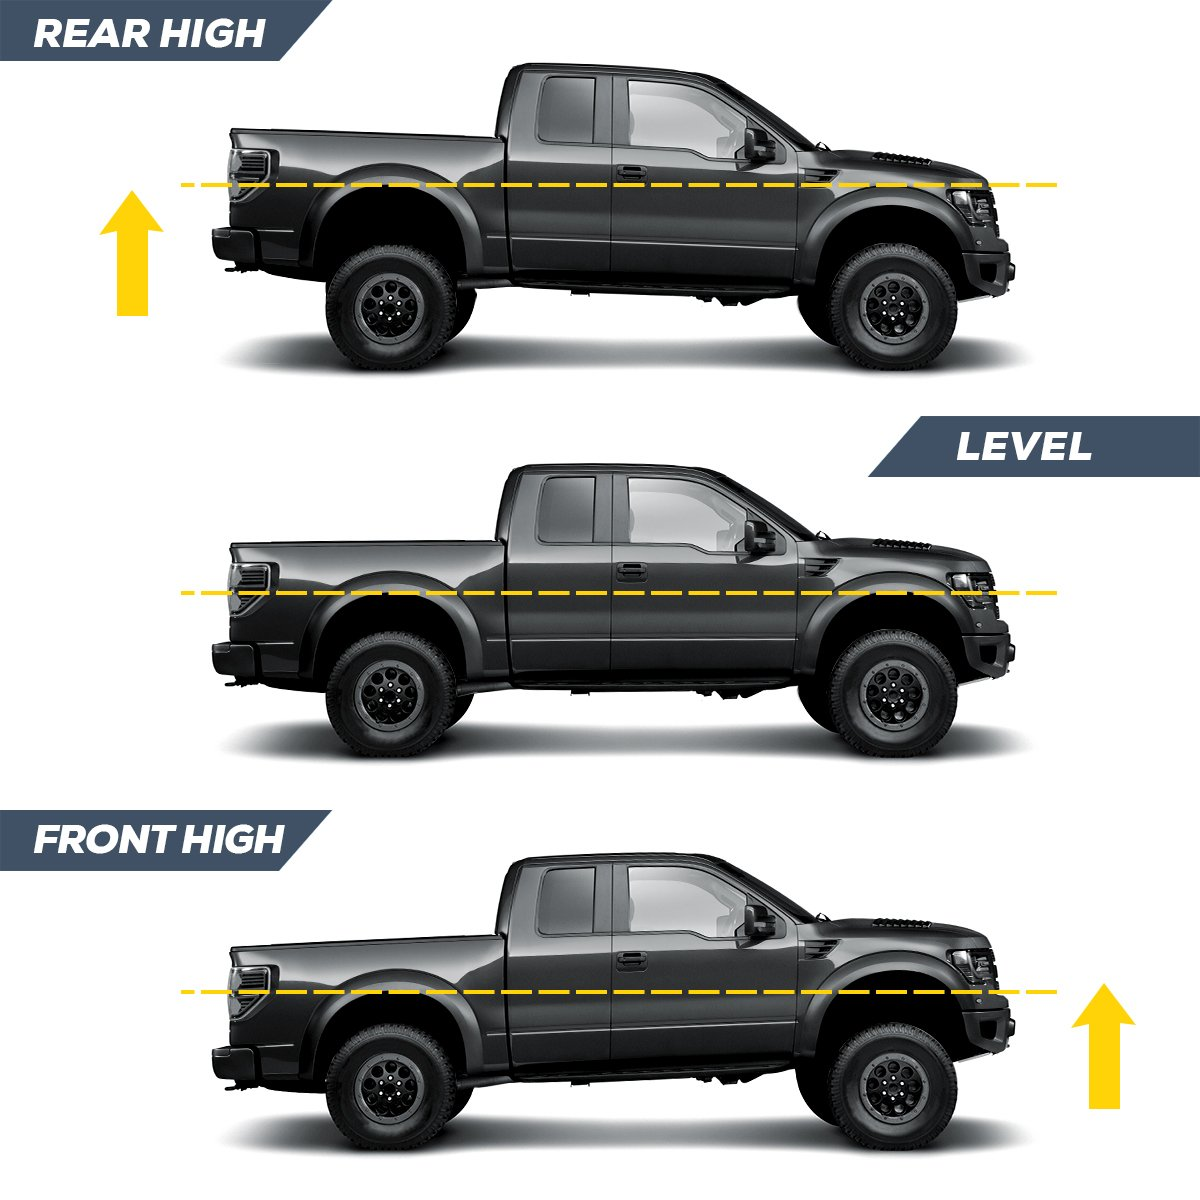 KSP Performance 3 Front 2 Rear Lift Kits Assemble for 4x4 ram 1500 Struts Spacers 2009 2010 2011 2012 2013 2014 2015 2016 2017 2018 Leveling Kit for Dodge Ram 1500 4WD 2009-2018